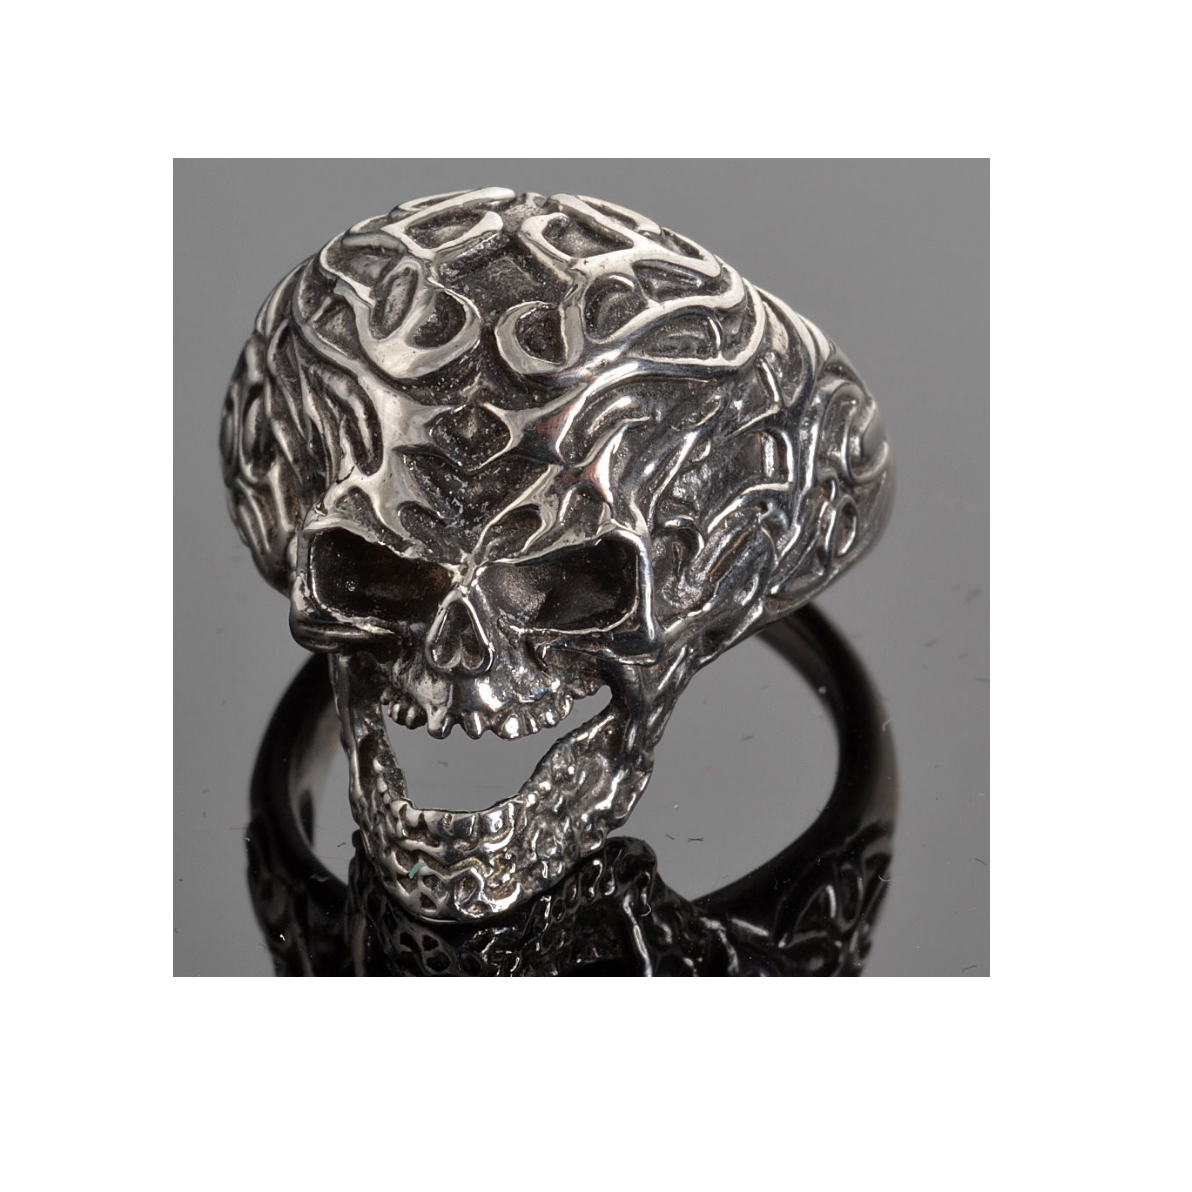 Stainless steel men 39 s tribal tattoo skull ring extreme for Stainless steel tattoo